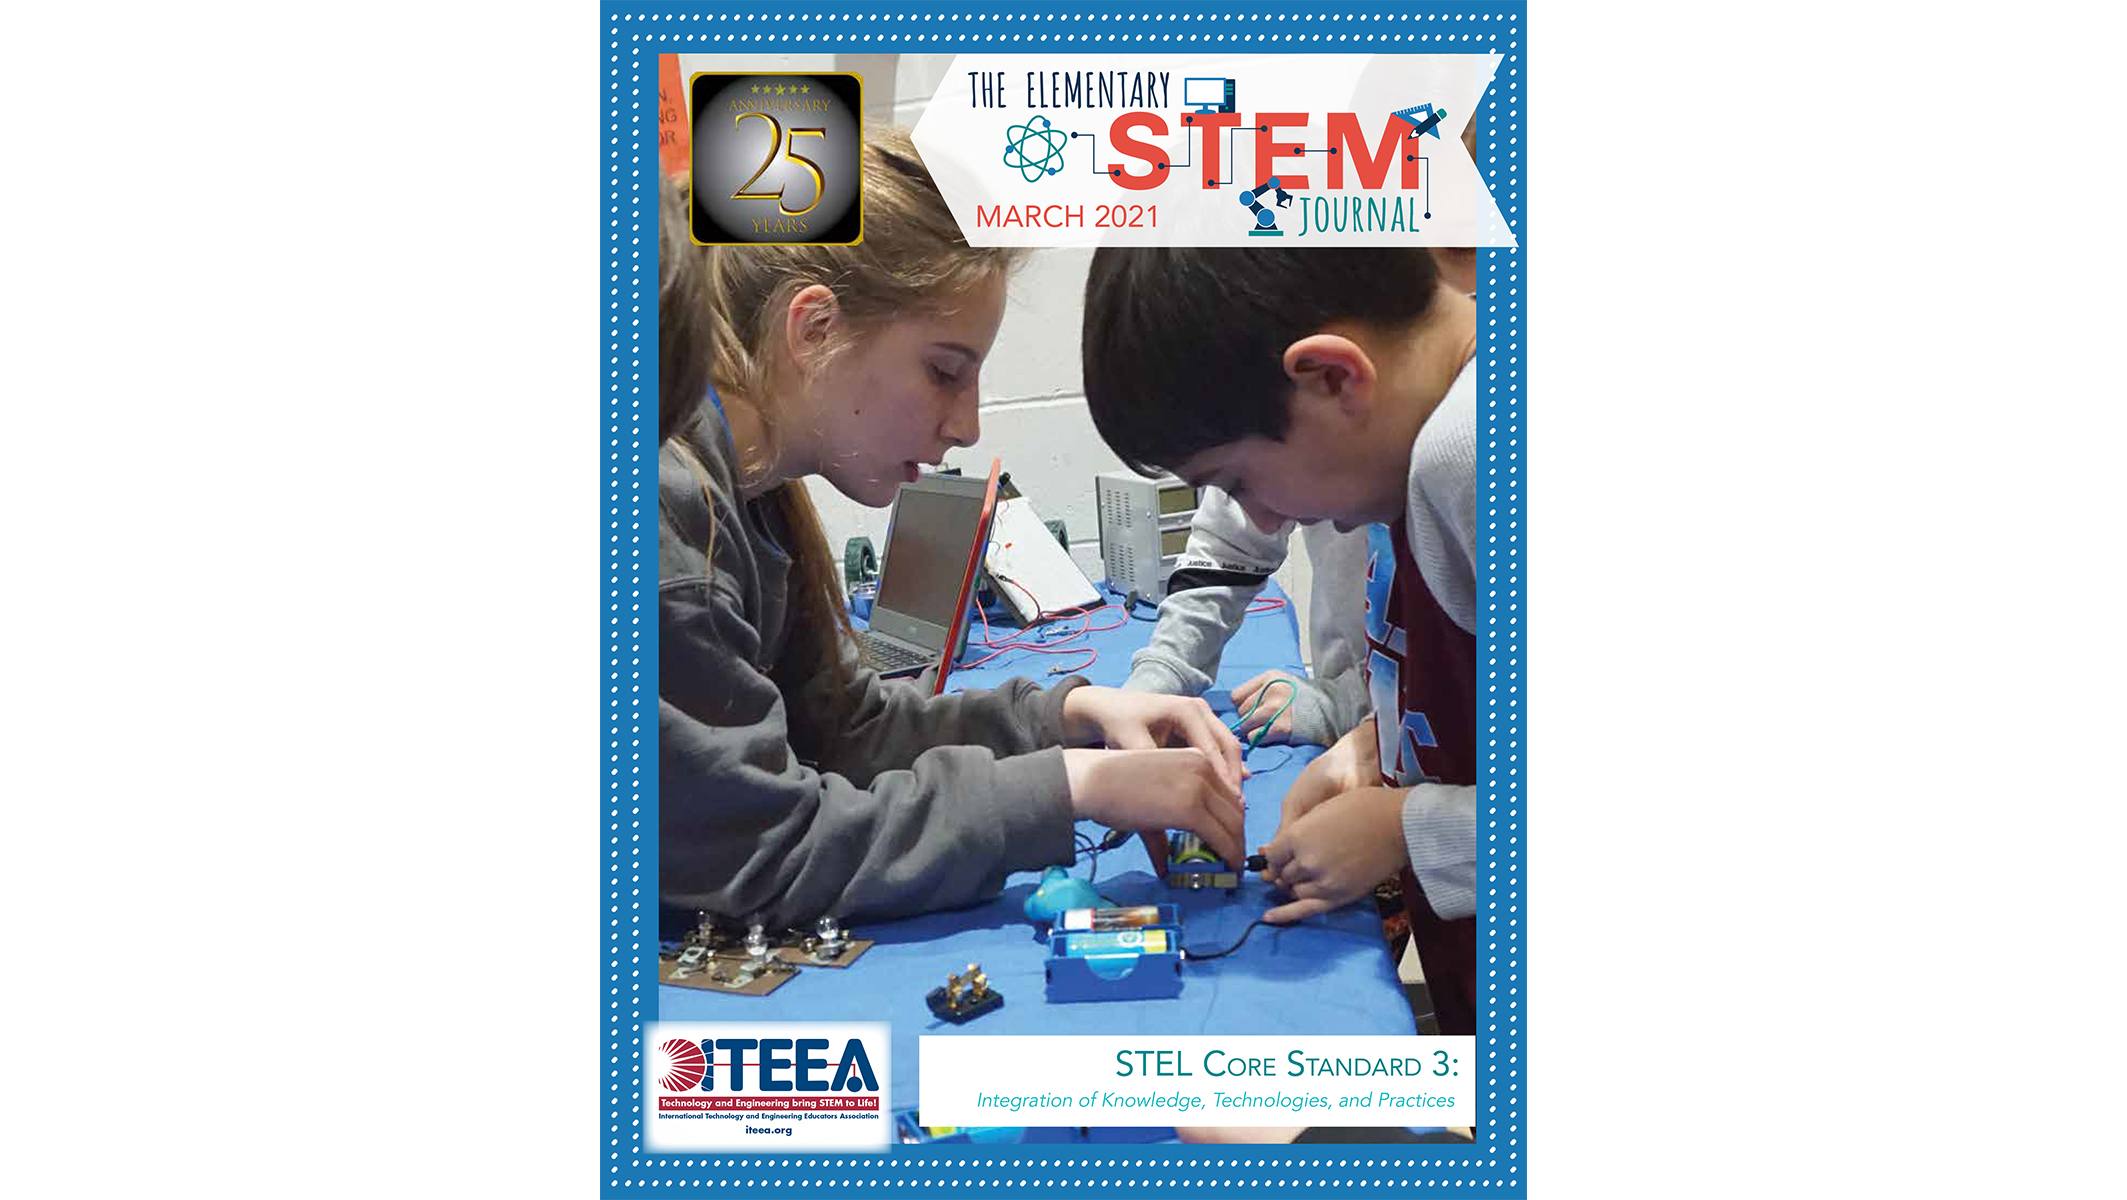 Here's a Peek Inside the March 2021 issue of The Elementary STEM Journal